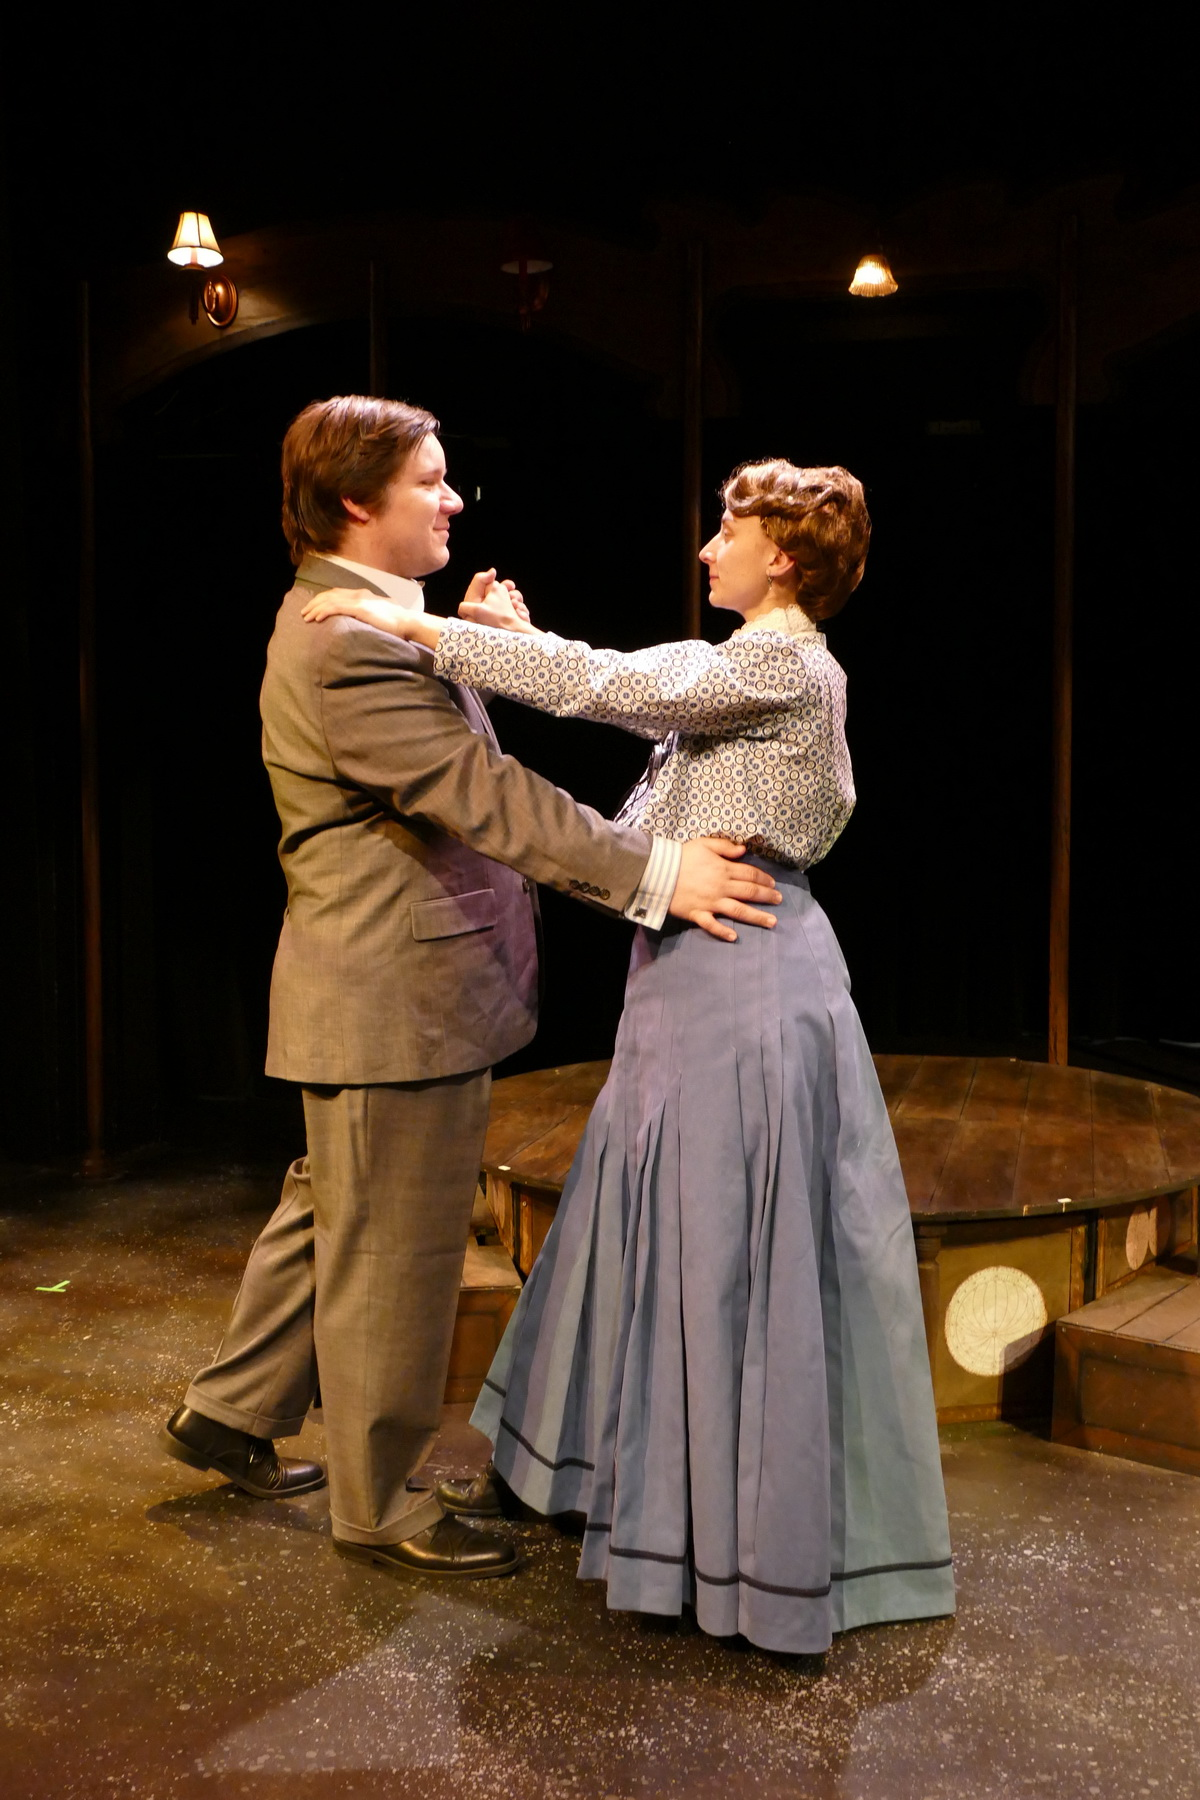 Andrew Keller as Peter Shaw and Brittany Gaul as Henrietta Leavitt